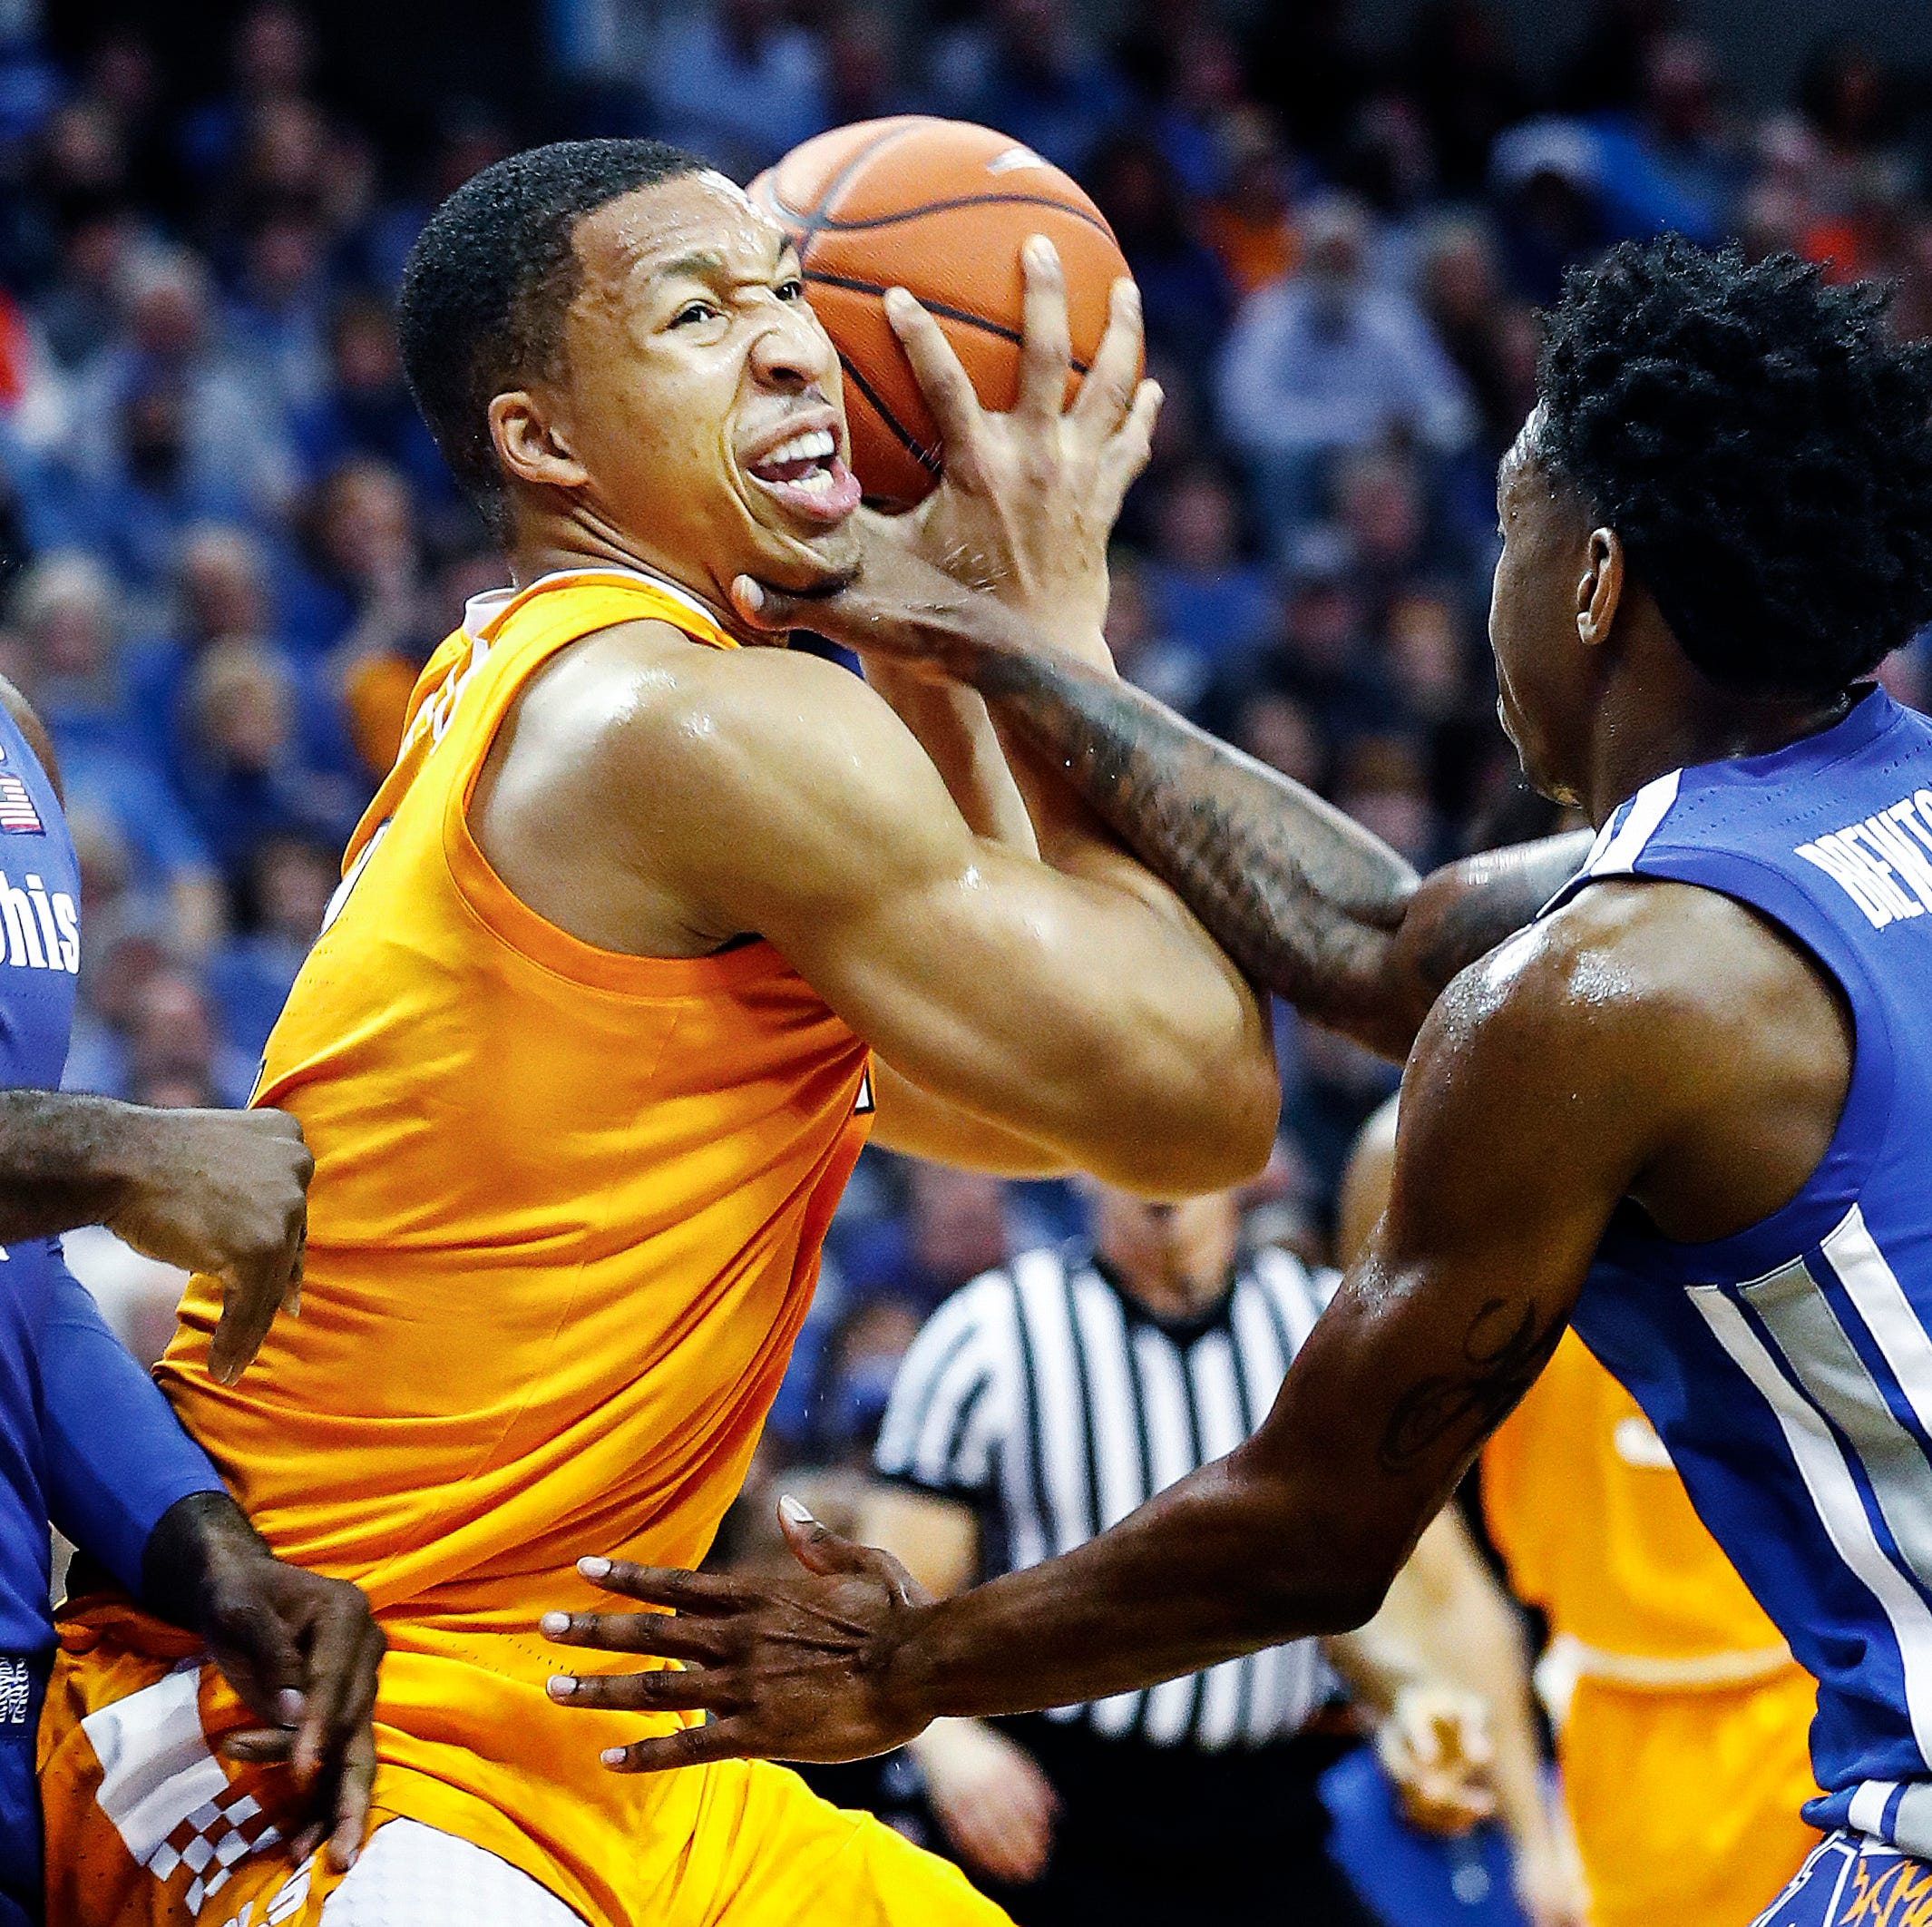 UT Vols basketball players relish first Memphis rivalry experience